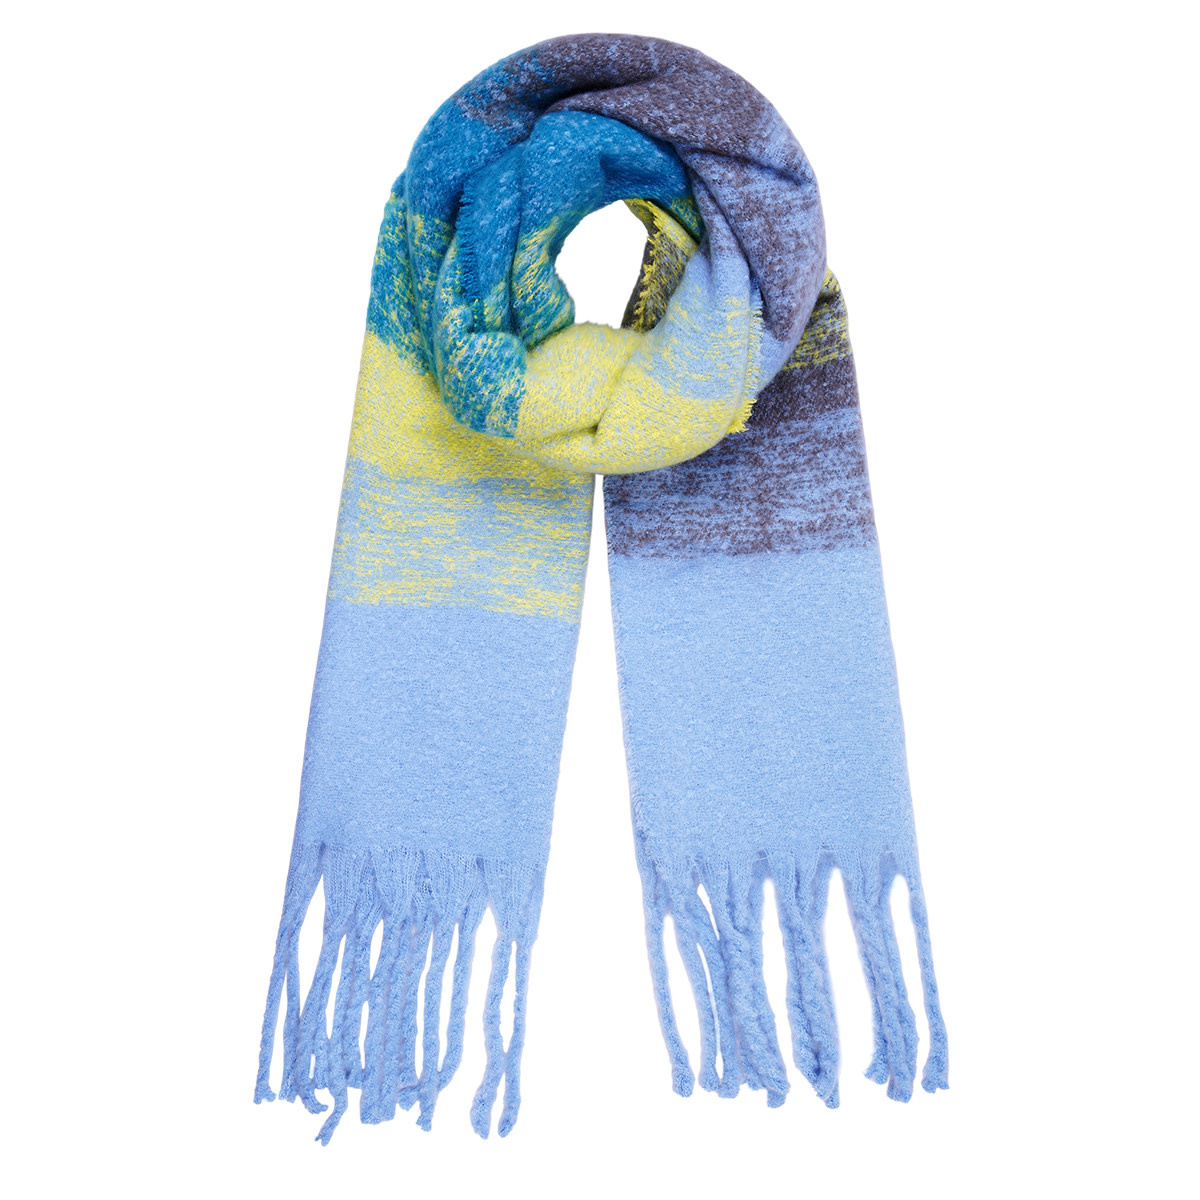 With love Scarf 'keep me warm light blue - yellow